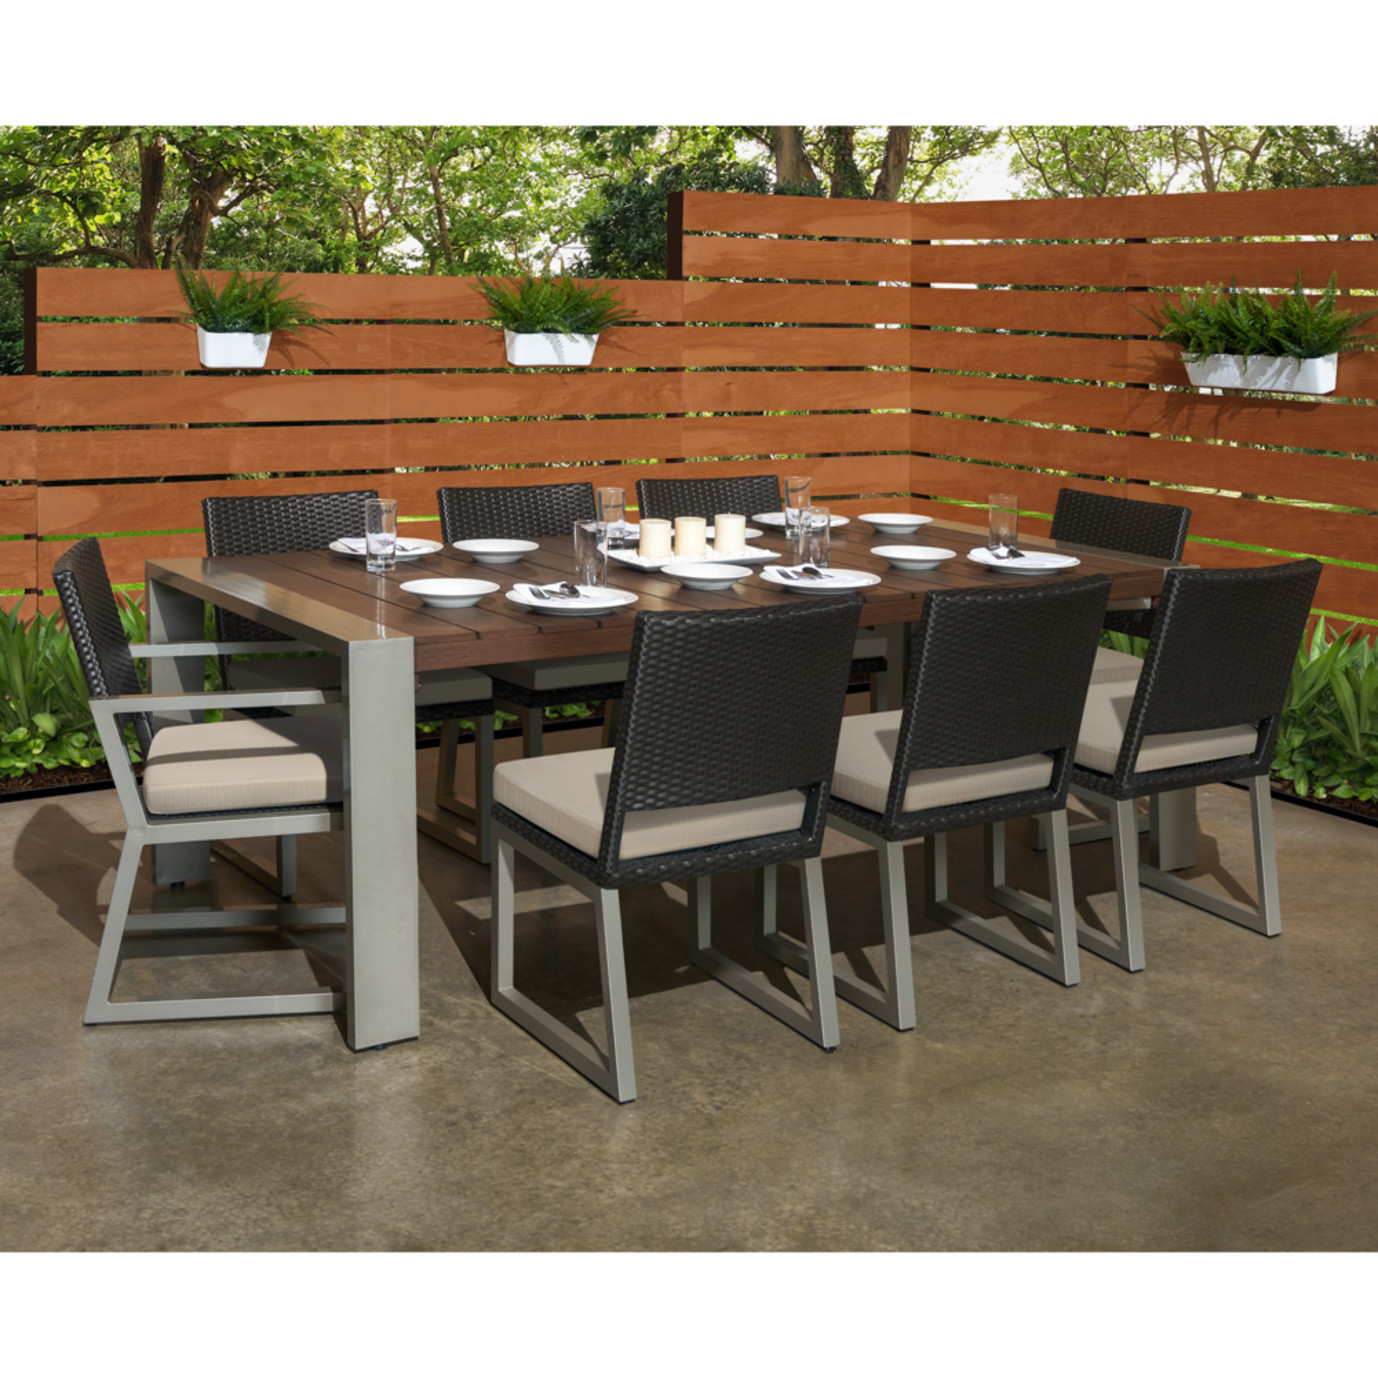 Milo™ Espresso 9pc Dining Set - Slate Gray